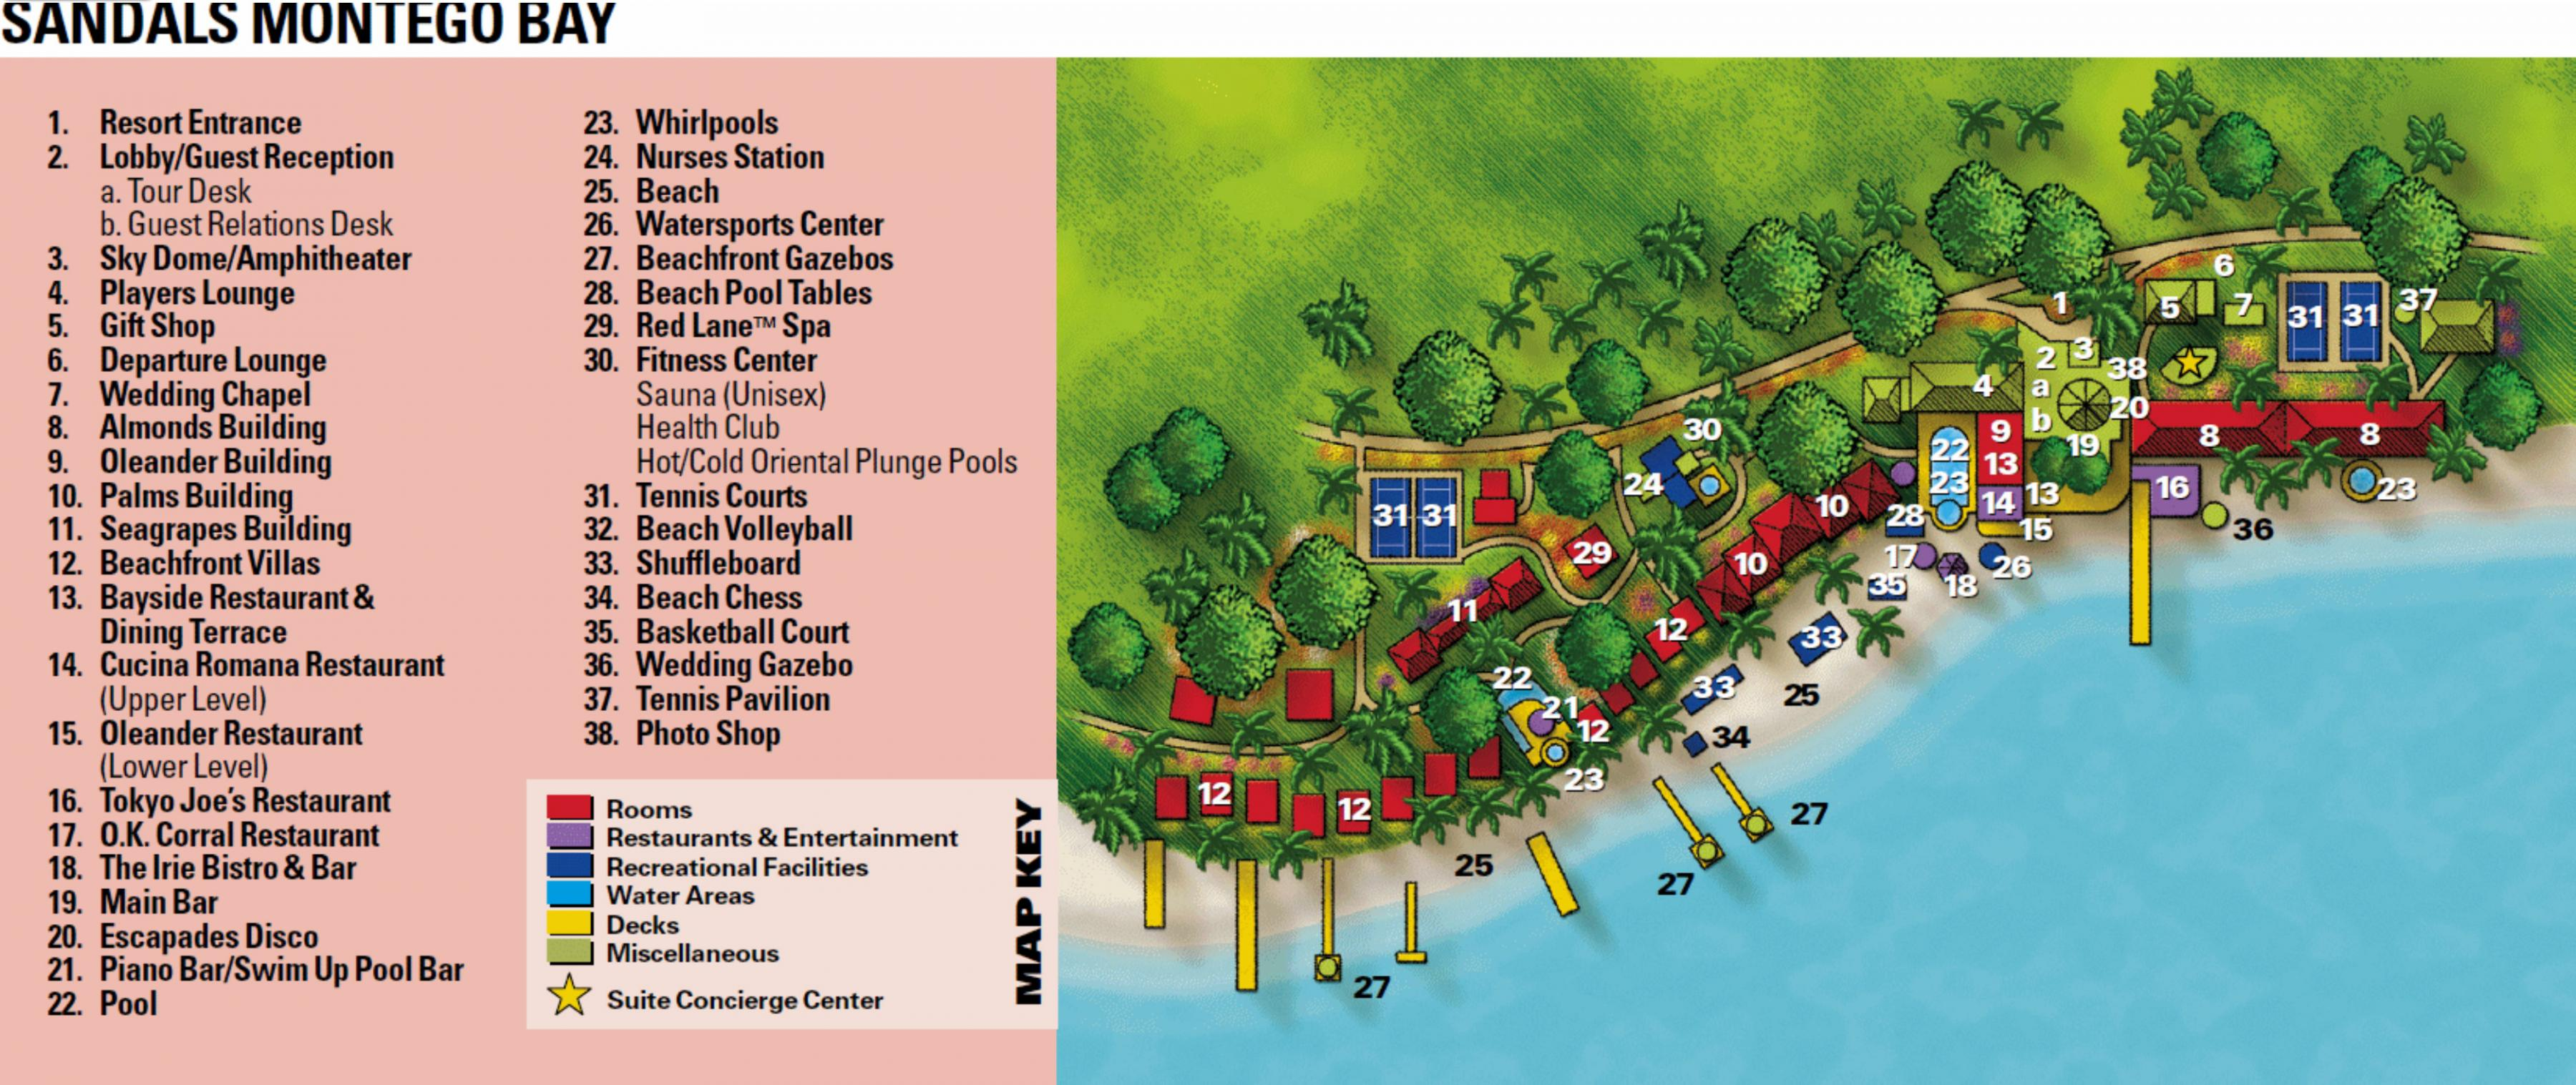 Map Of Jamaica Resorts Map of resorts in montego bay jamaica   Jamaica resort map montego